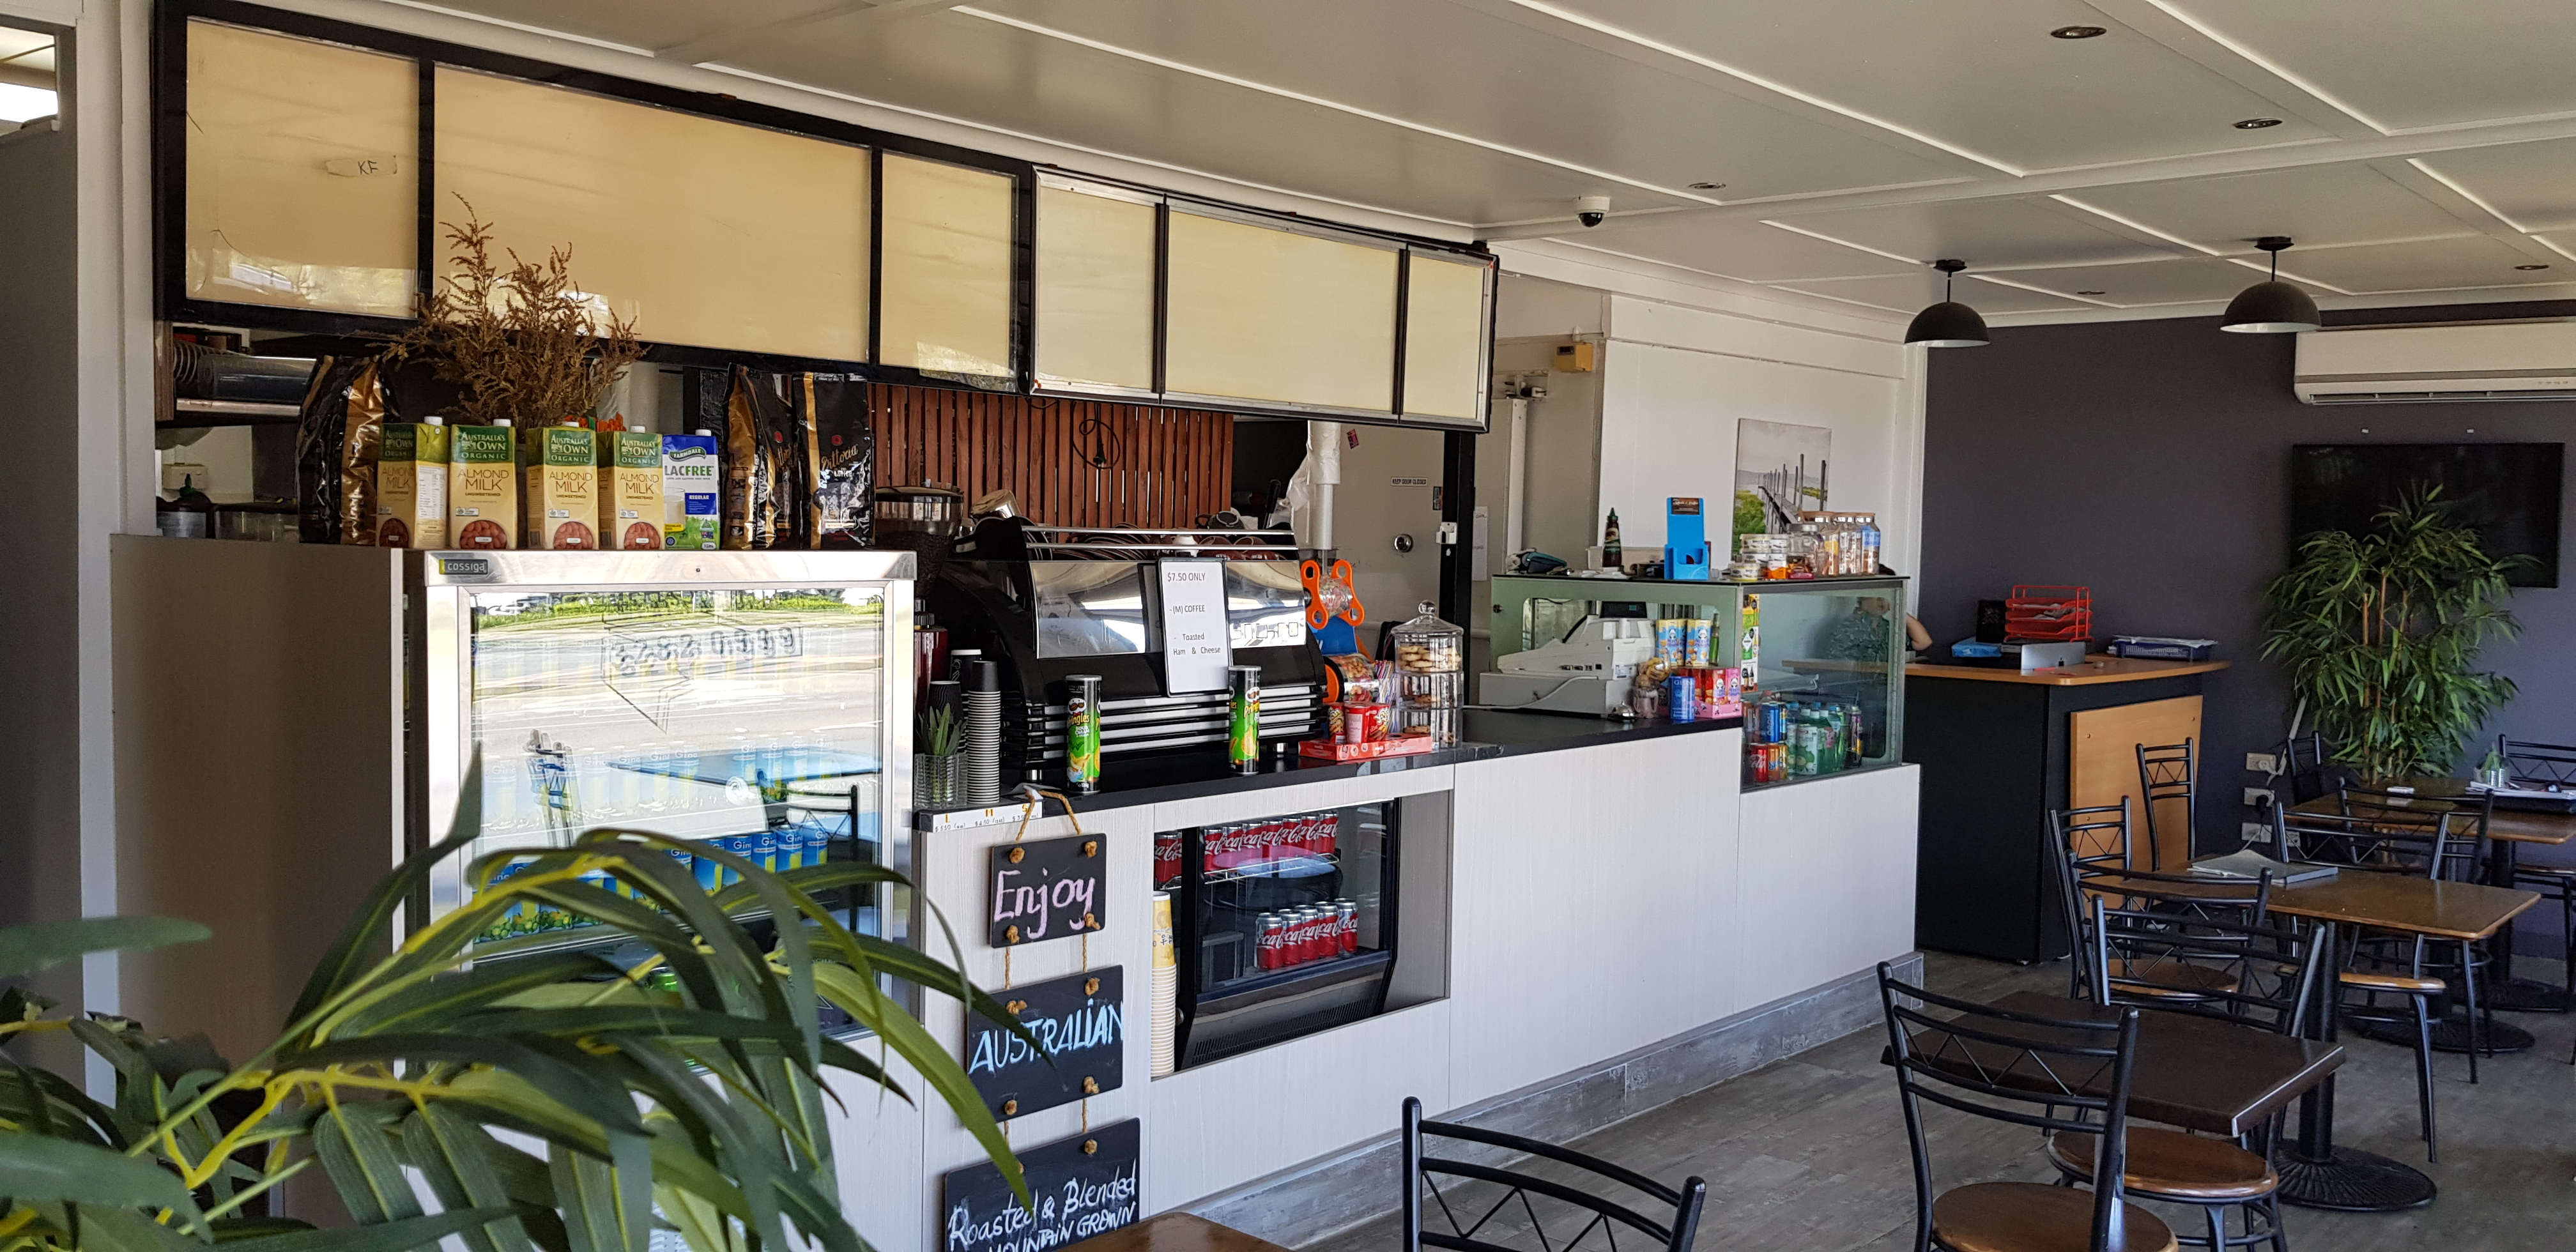 CAFE RESTAURANT TAKEAWAY - BUSINESS FOR SALE - $30,000 NEGOTIABLE WIWO BASIS